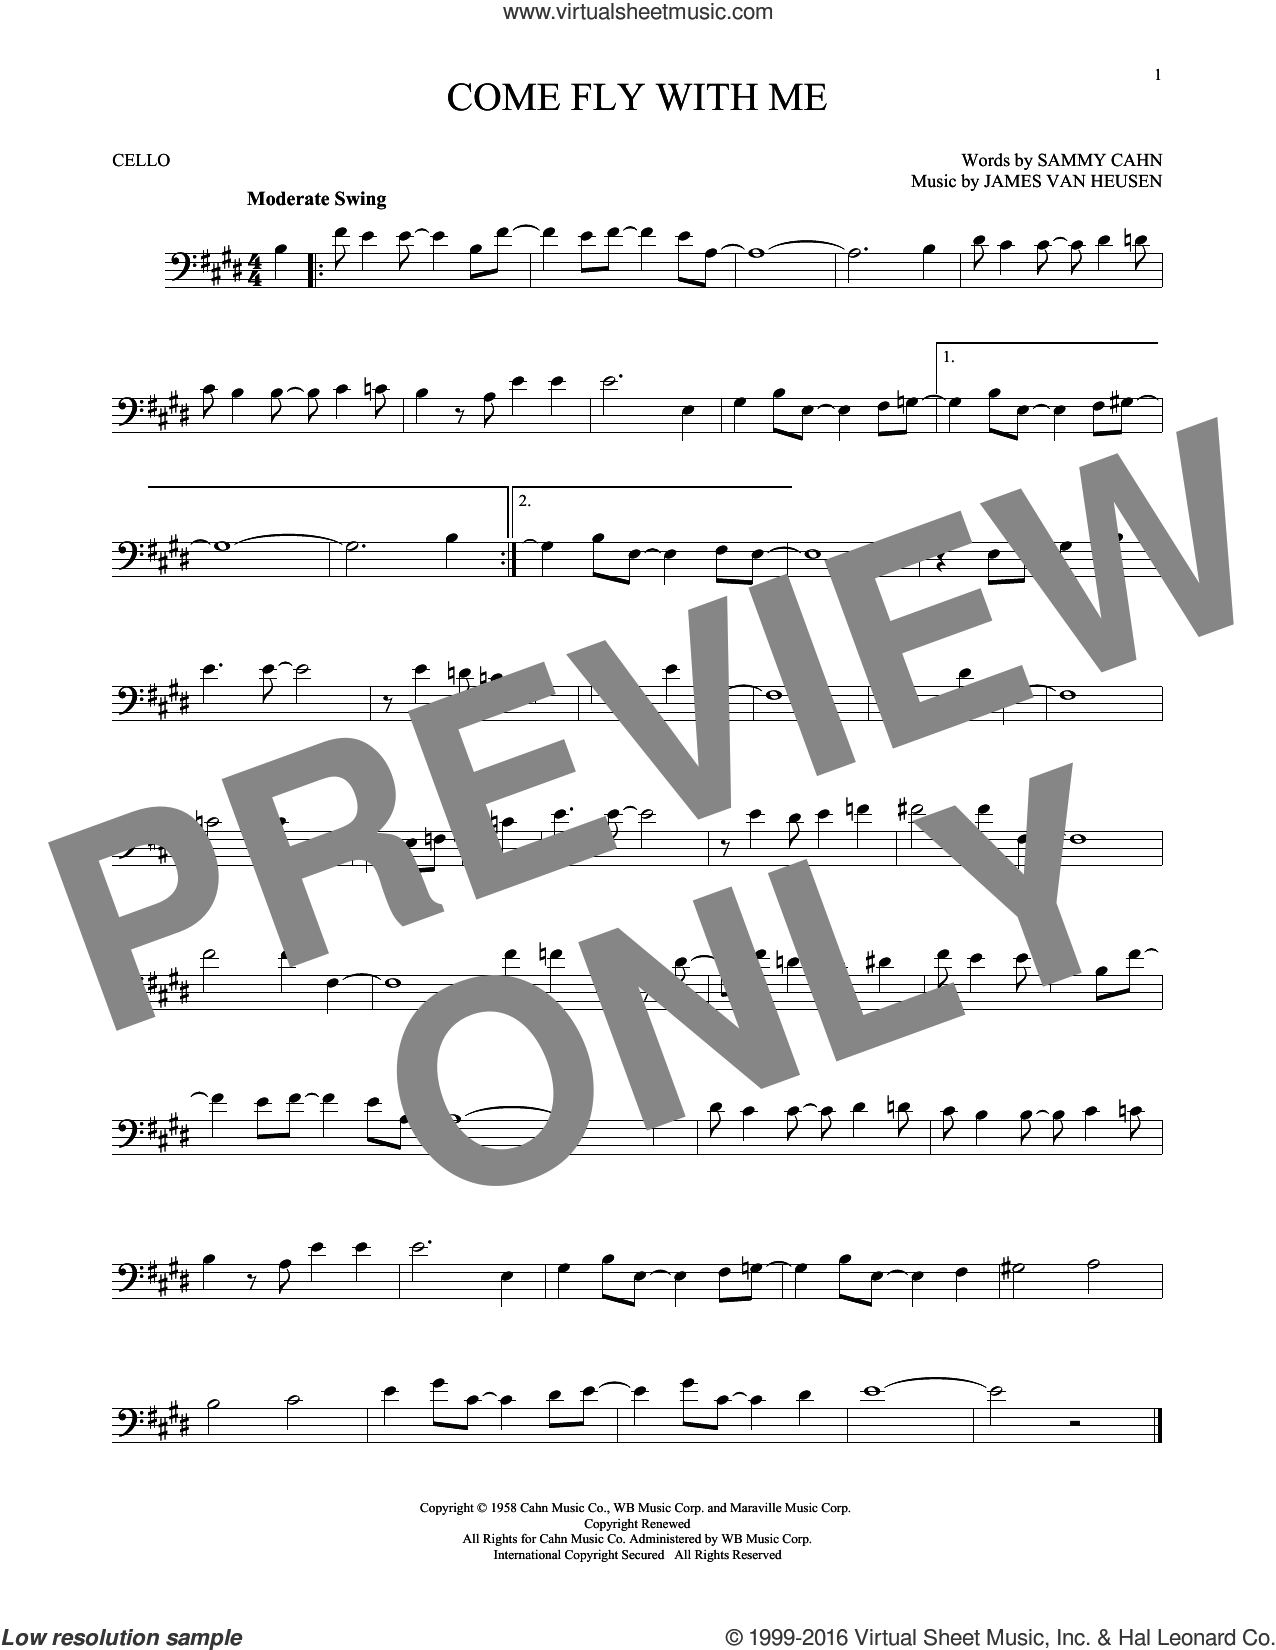 Come Fly With Me sheet music for cello solo by Sammy Cahn and Jimmy van Heusen. Score Image Preview.